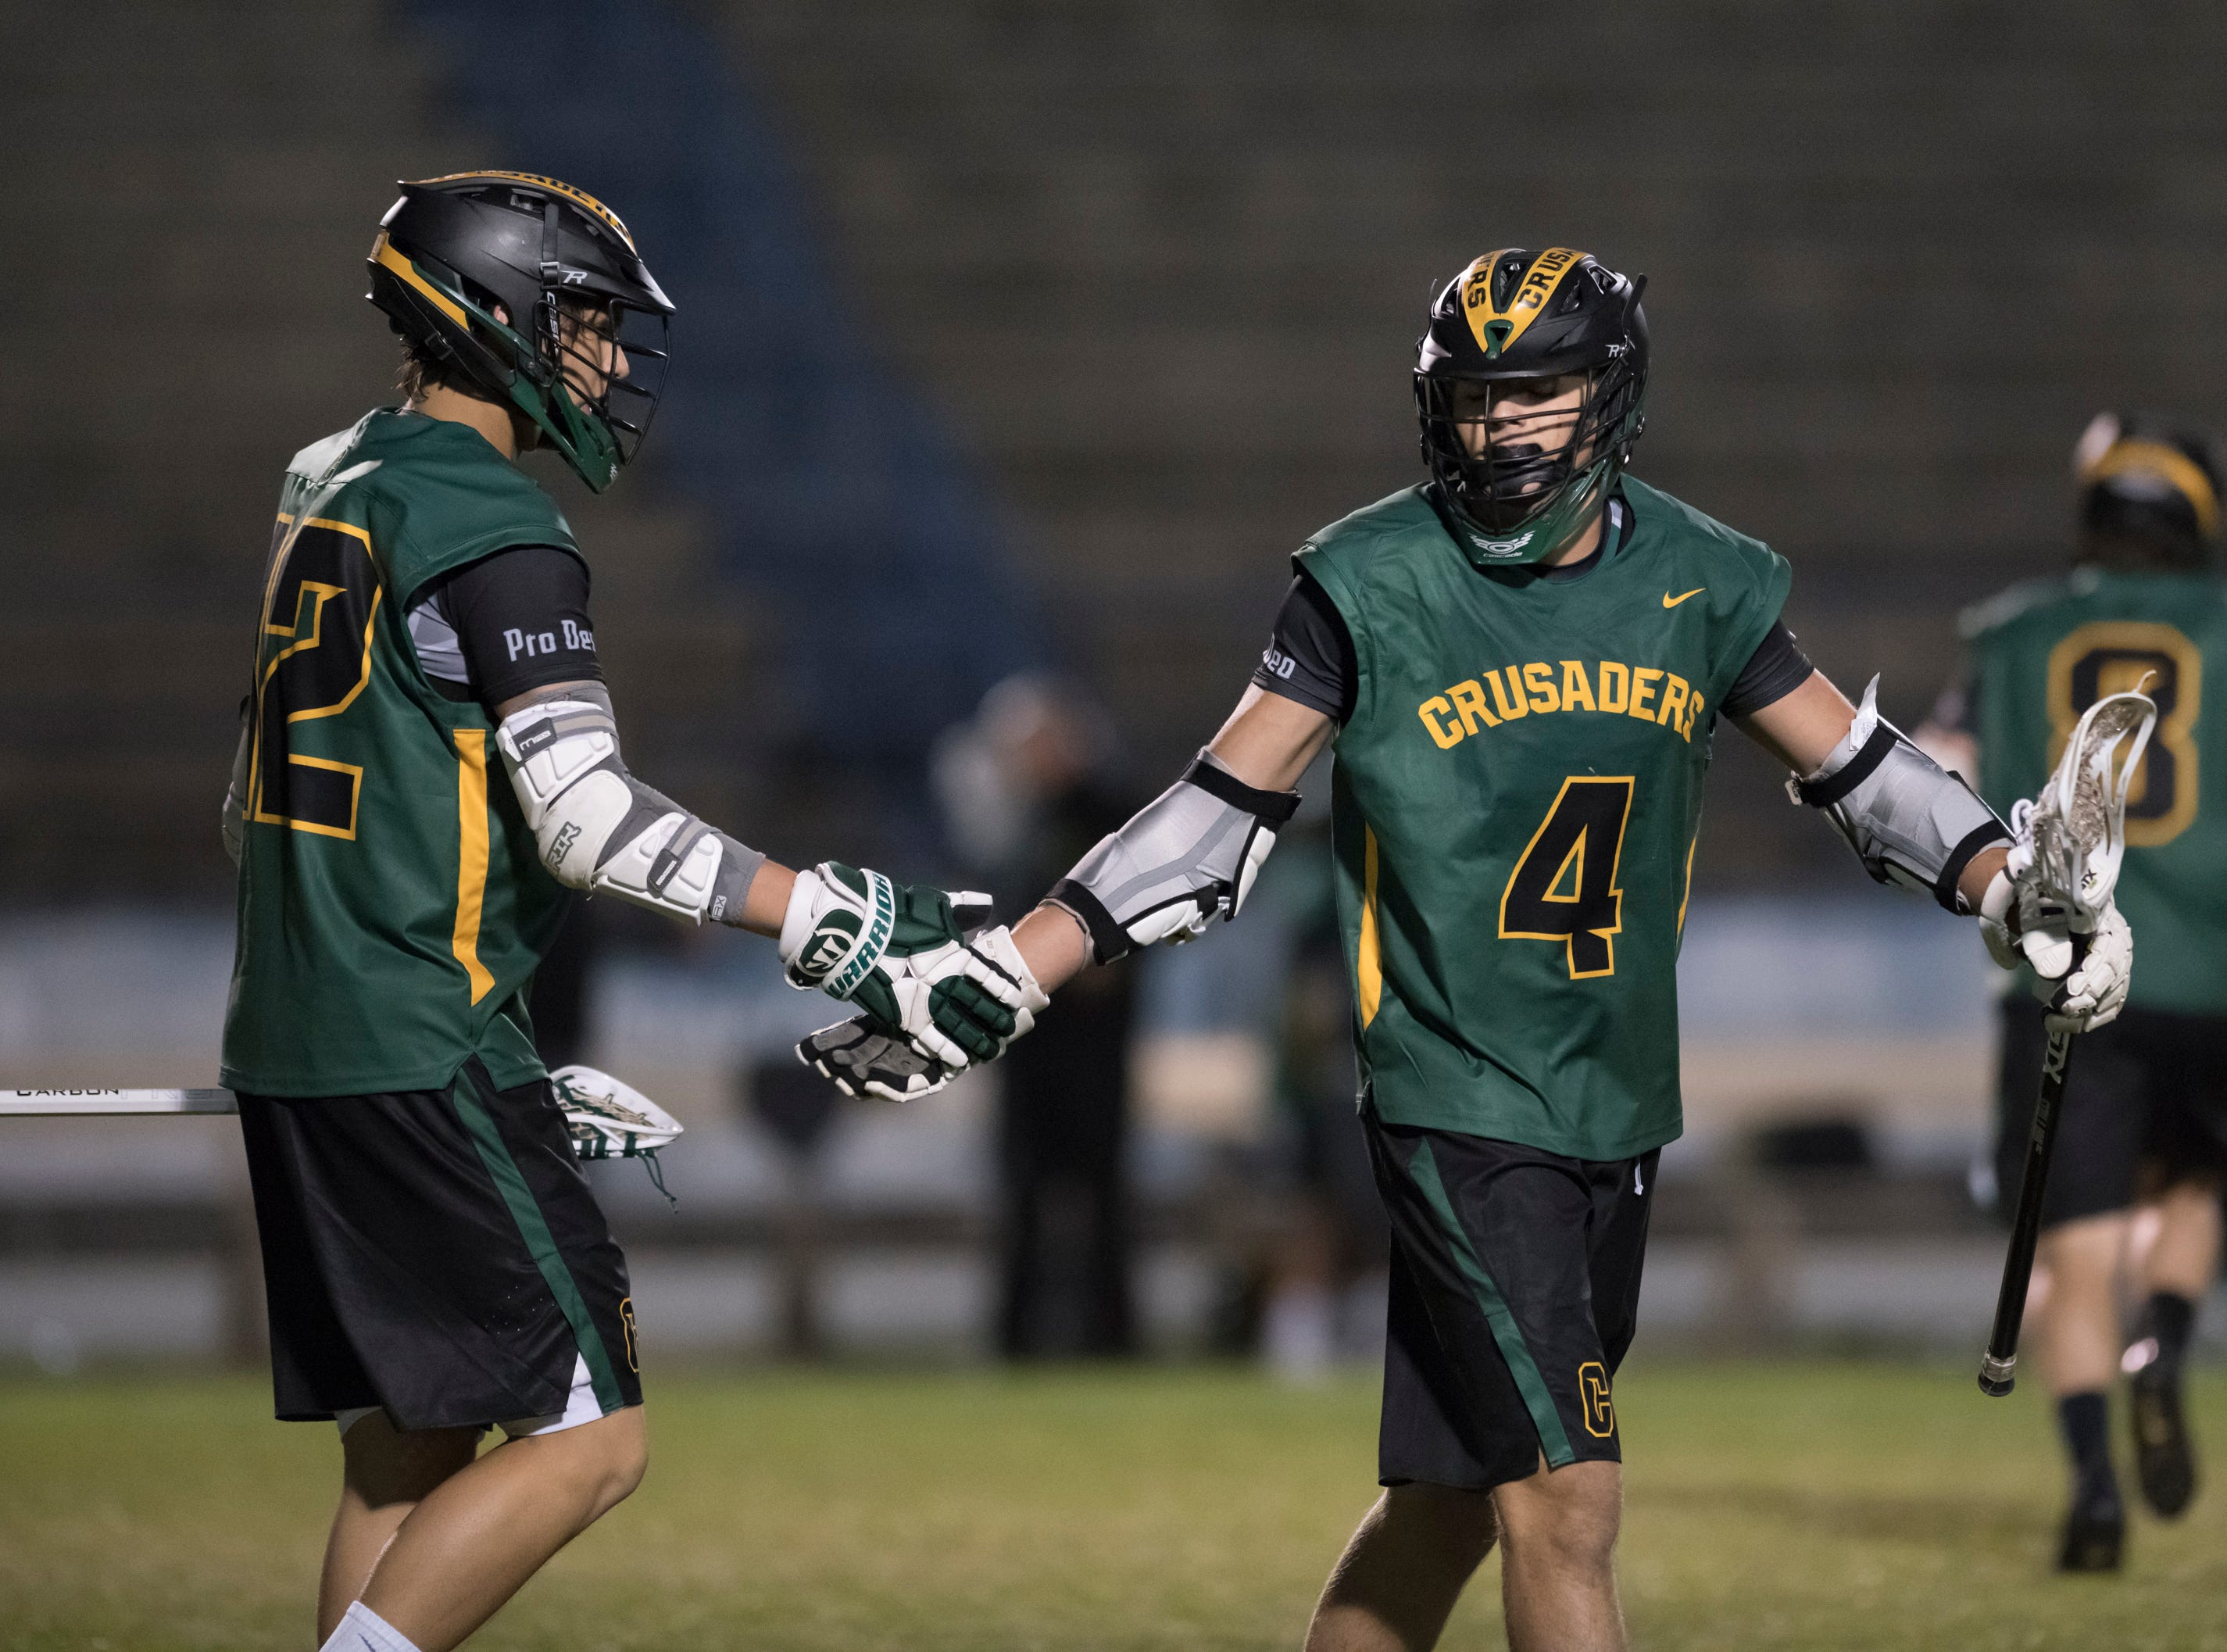 Braeden Lasquety (12) congratulates Bryant Mixon (4) on his goal as the Crusaders take a 5-3 lead during the Catholic vs. Gulf Breeze boys lacrosse game at Gulf Breeze High School on Wednesday, March 6, 2019.